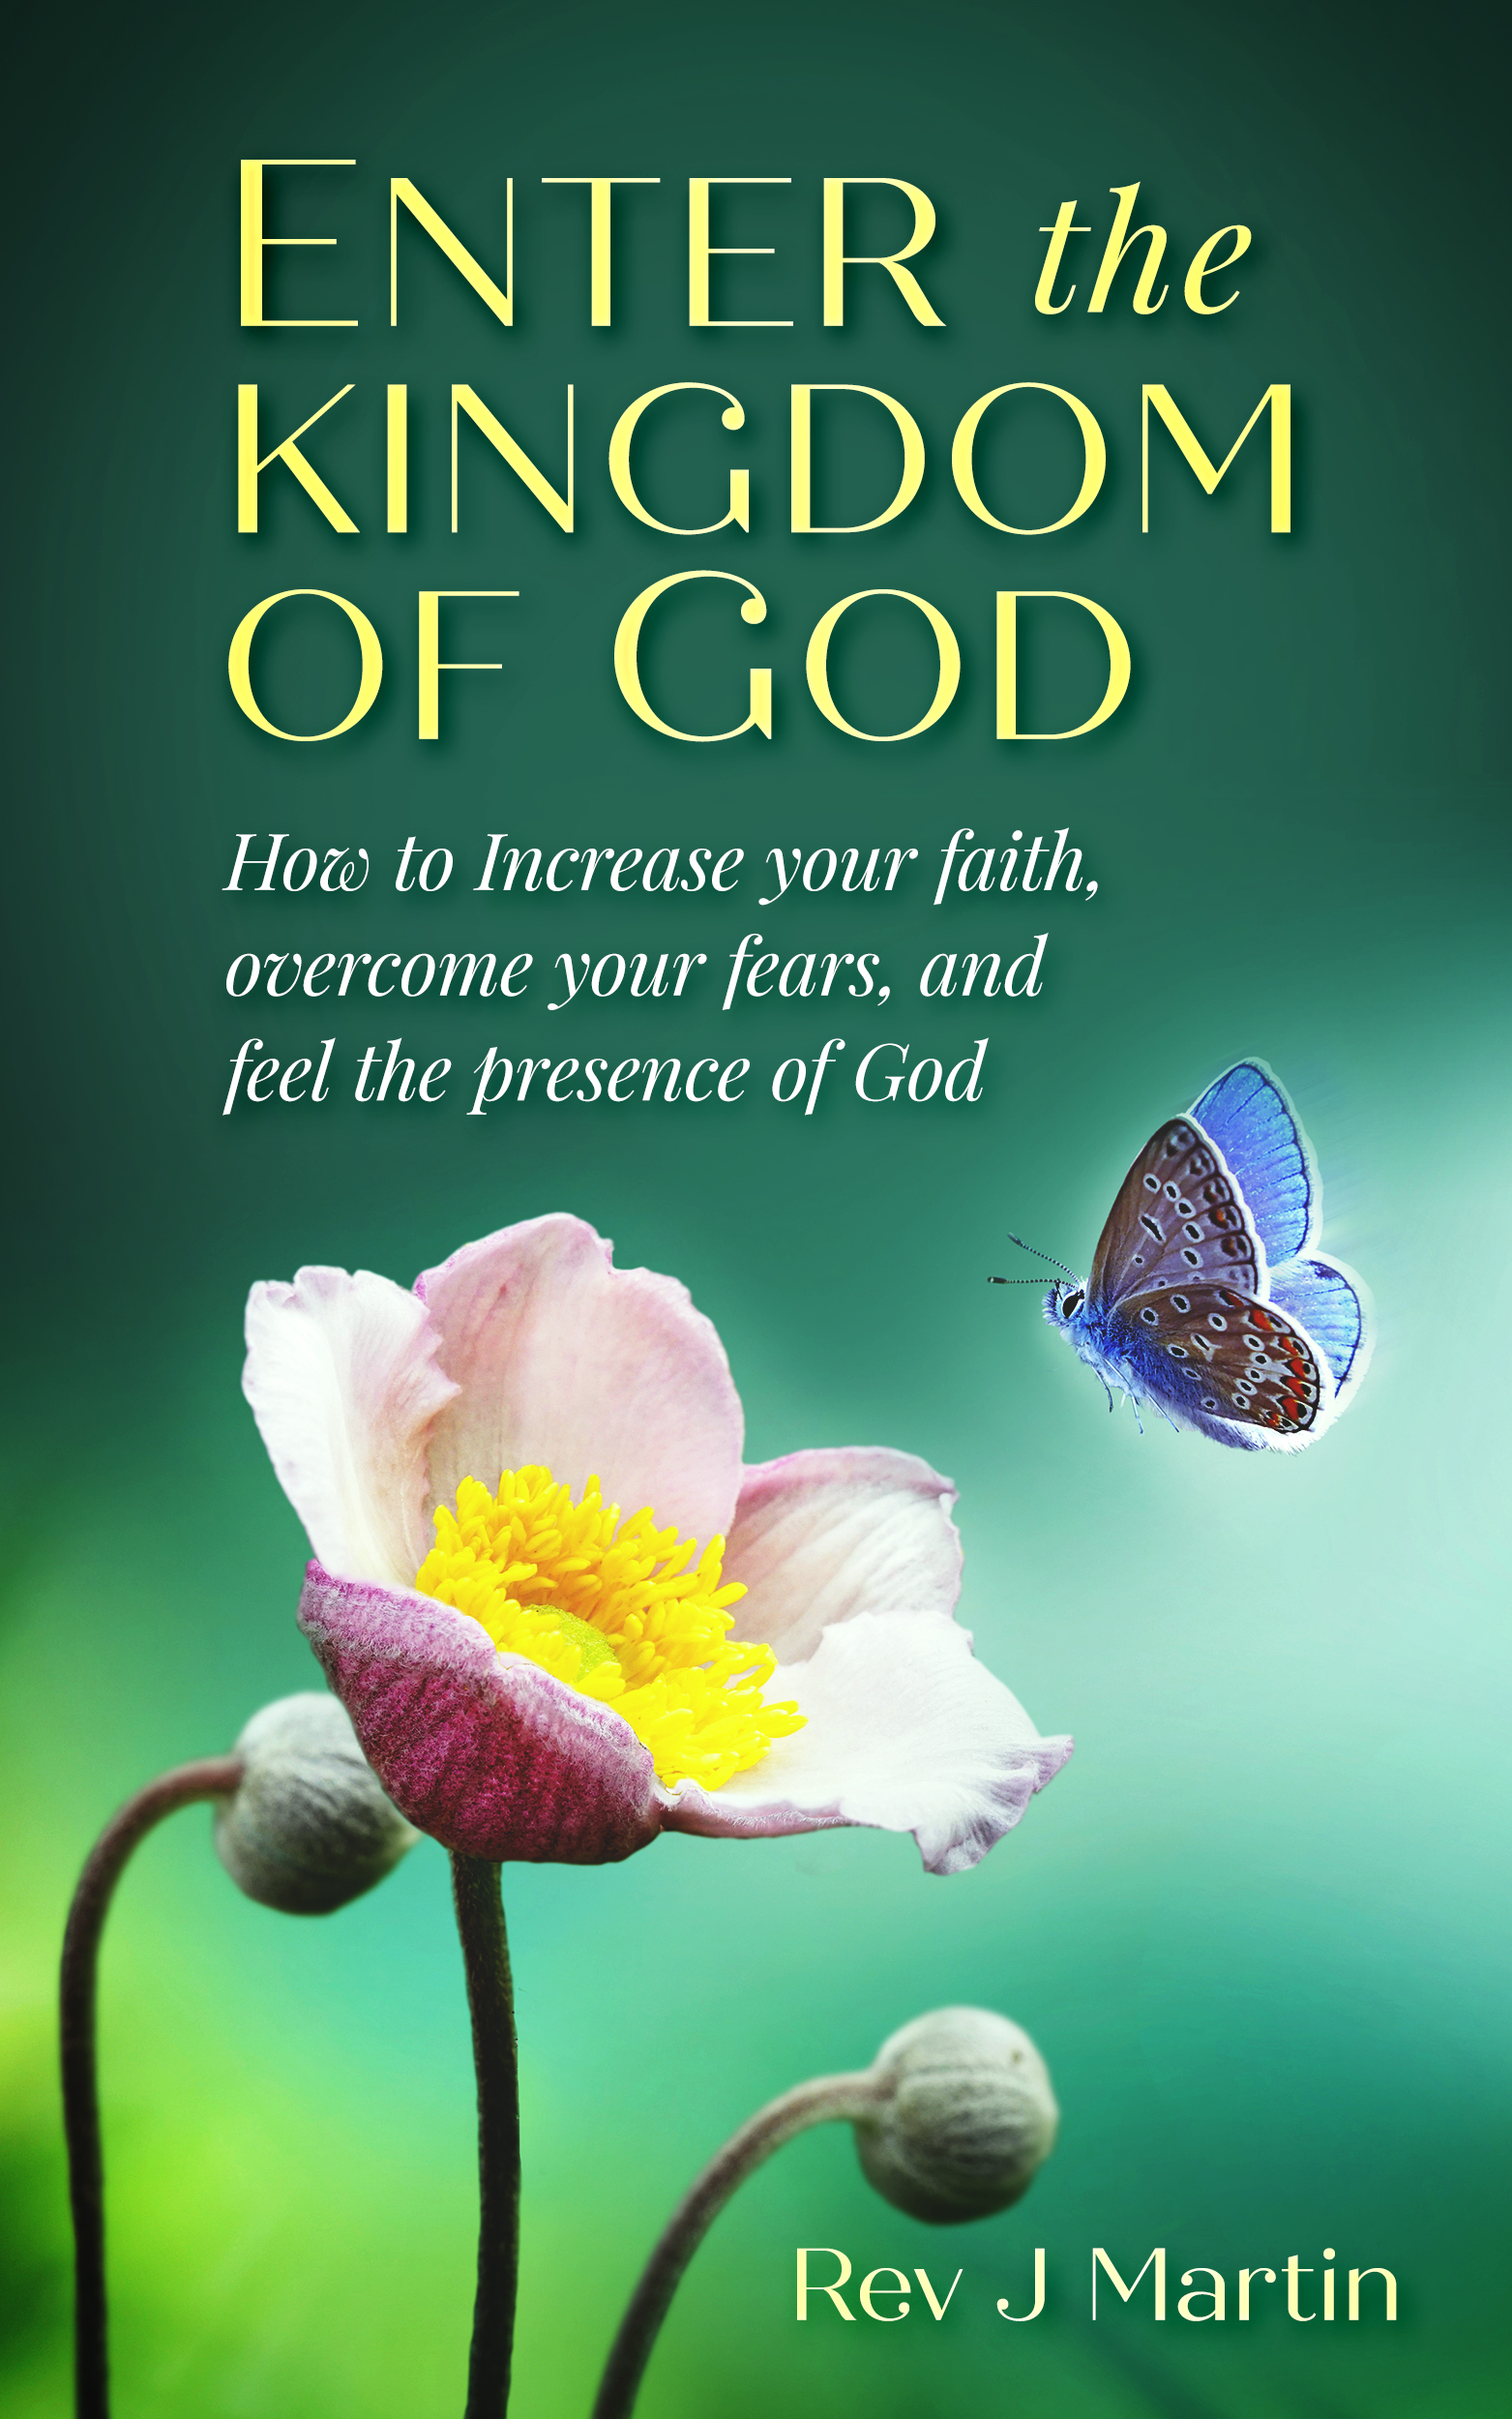 EnterthekingdomofGod